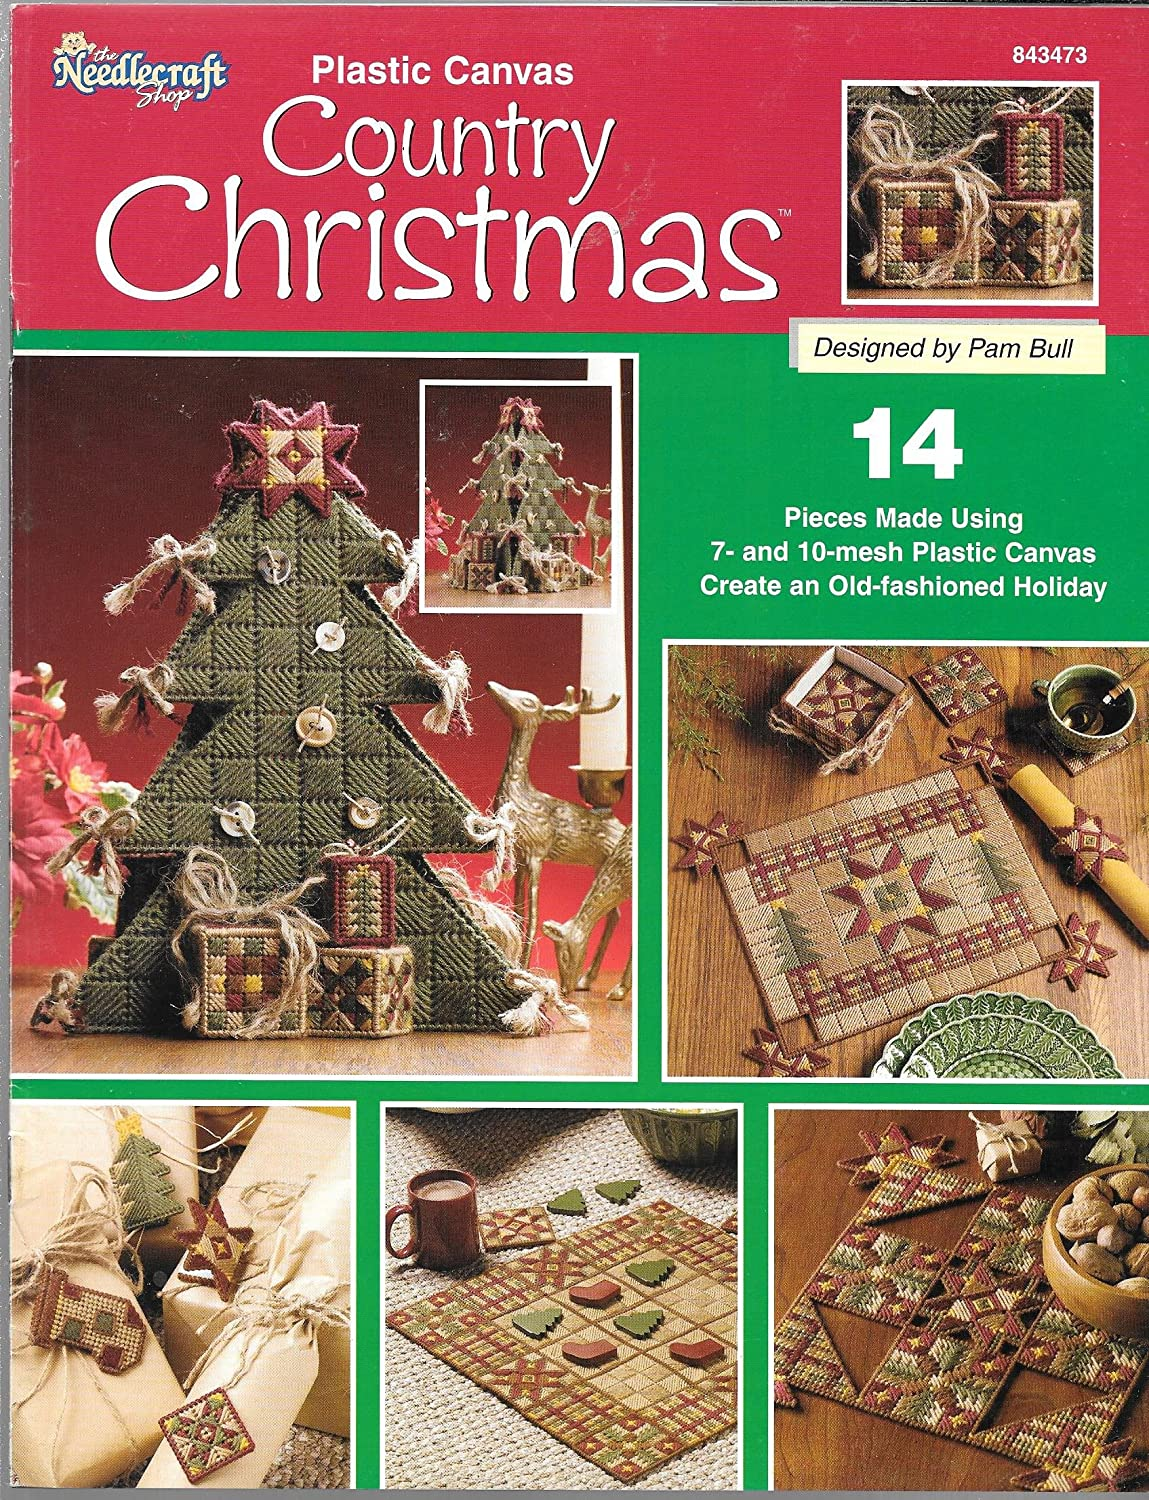 Plastic Canvas Country Christmas by The Needlecraft Shop (Leaflet 843473)